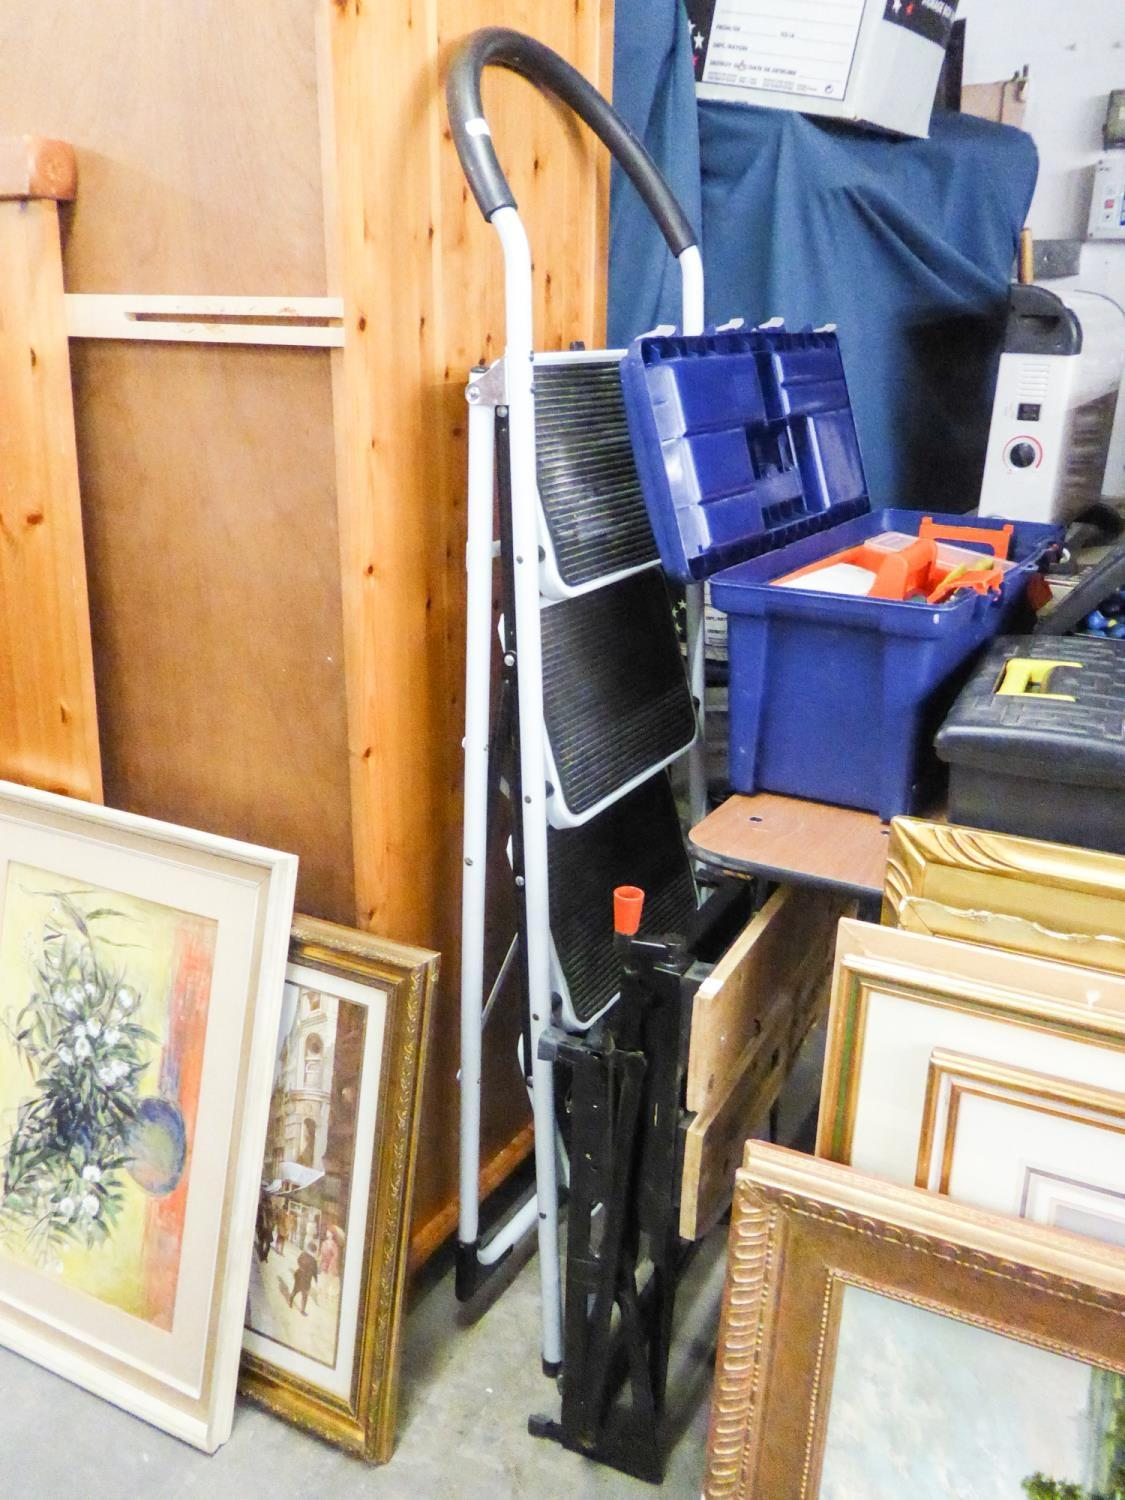 Lot 156 - LARGE ALLUMINIUM STEP LADDER, SMALLER STEP LADDER, A BLACK AND DECKER WORK STATION AND A LAWN TINE